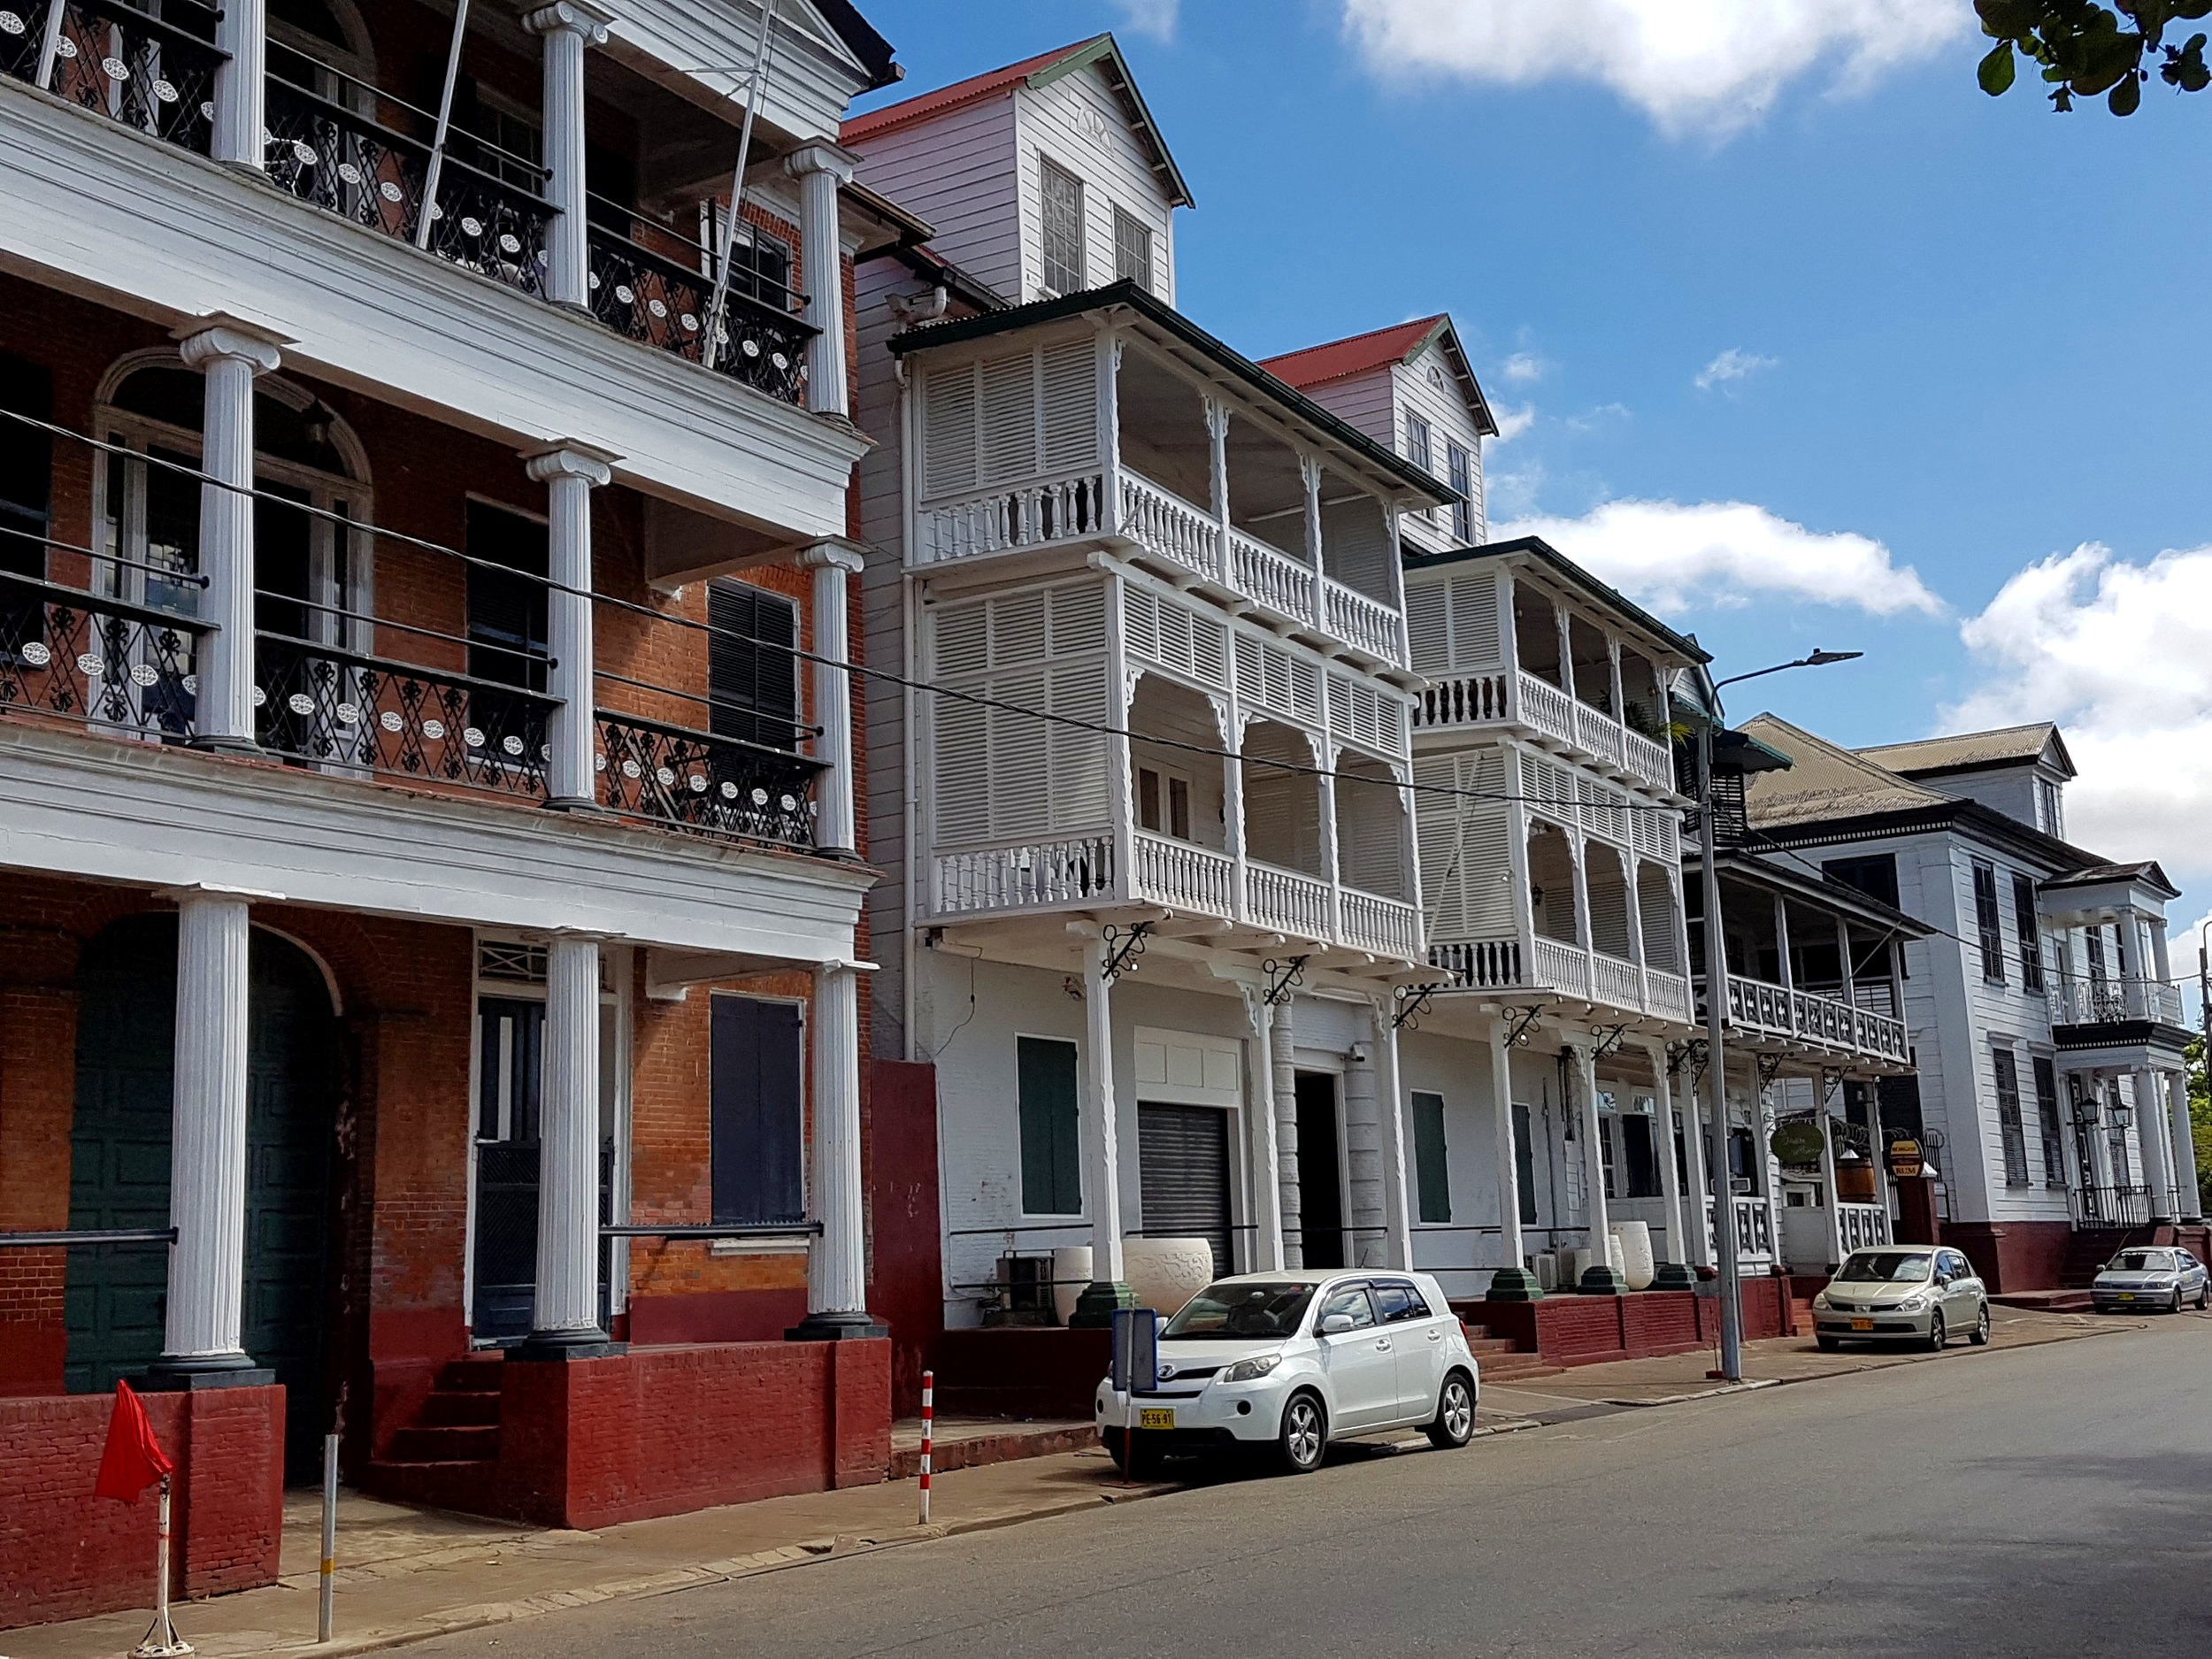 Dutch architecture in Paramaribo.